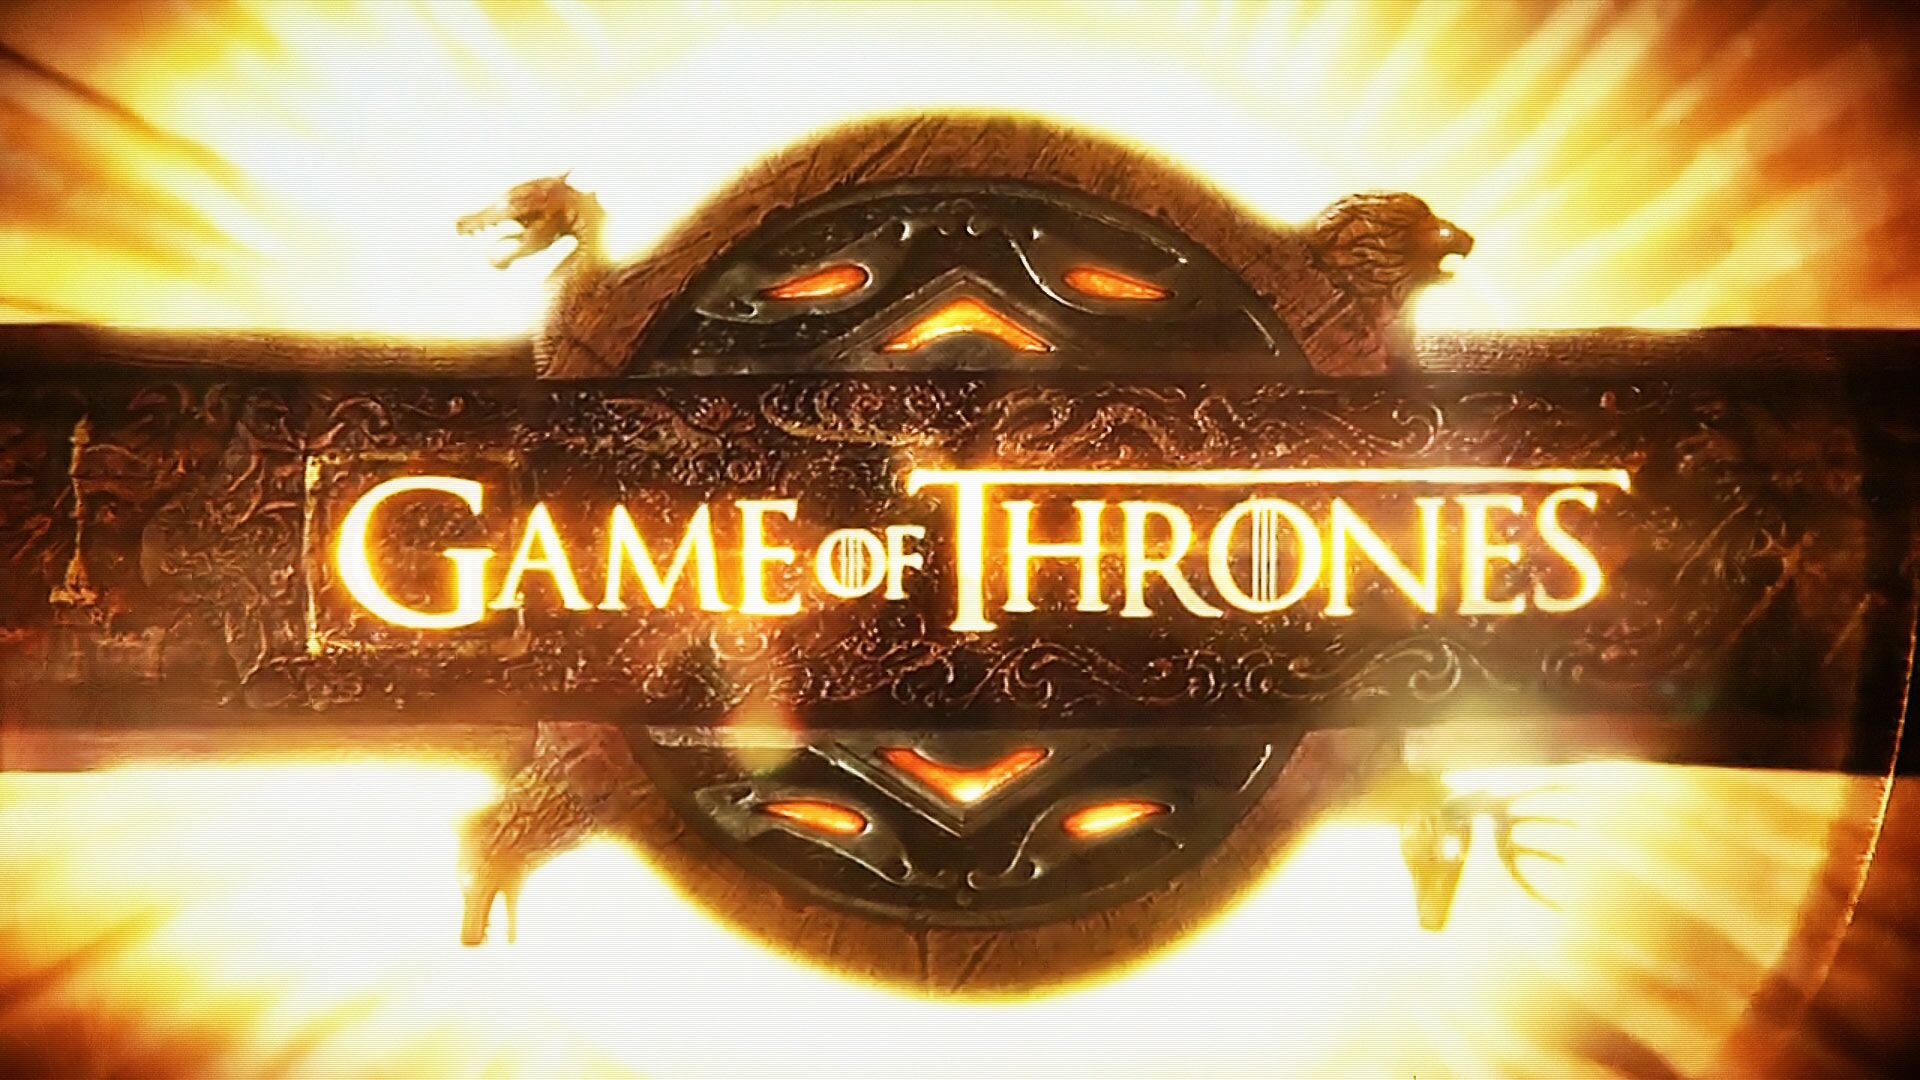 Check Out The First Photo From The Set Of Game Of Thrones Season 8